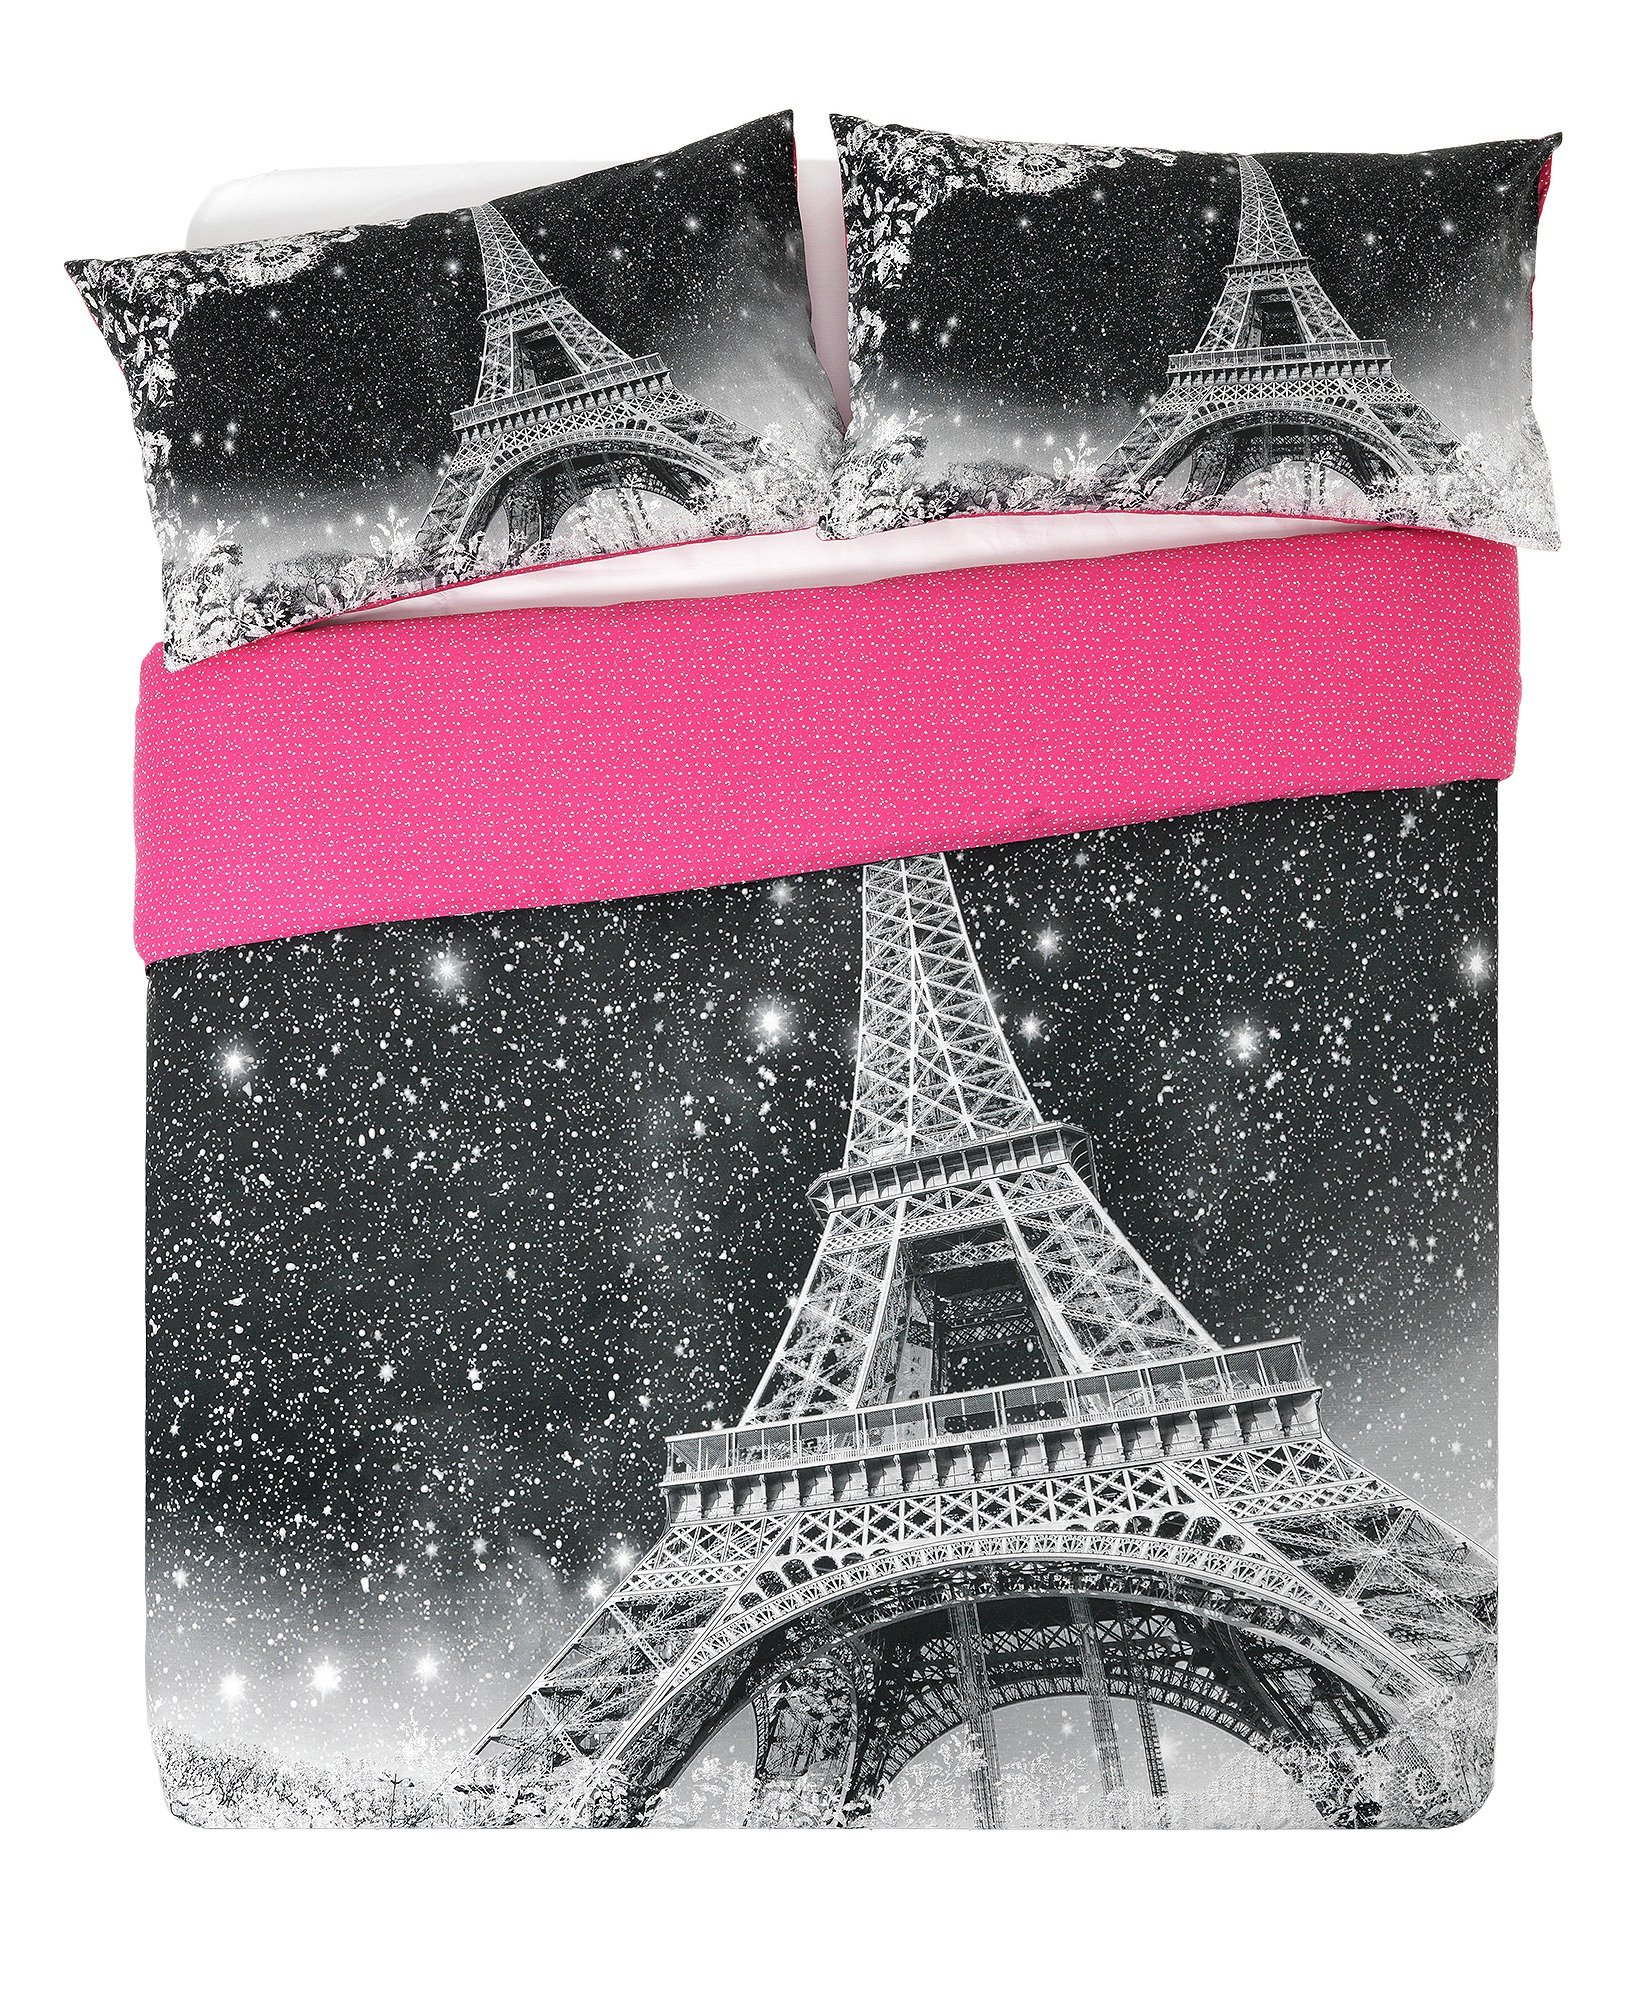 home  paris by night  bedding set  double